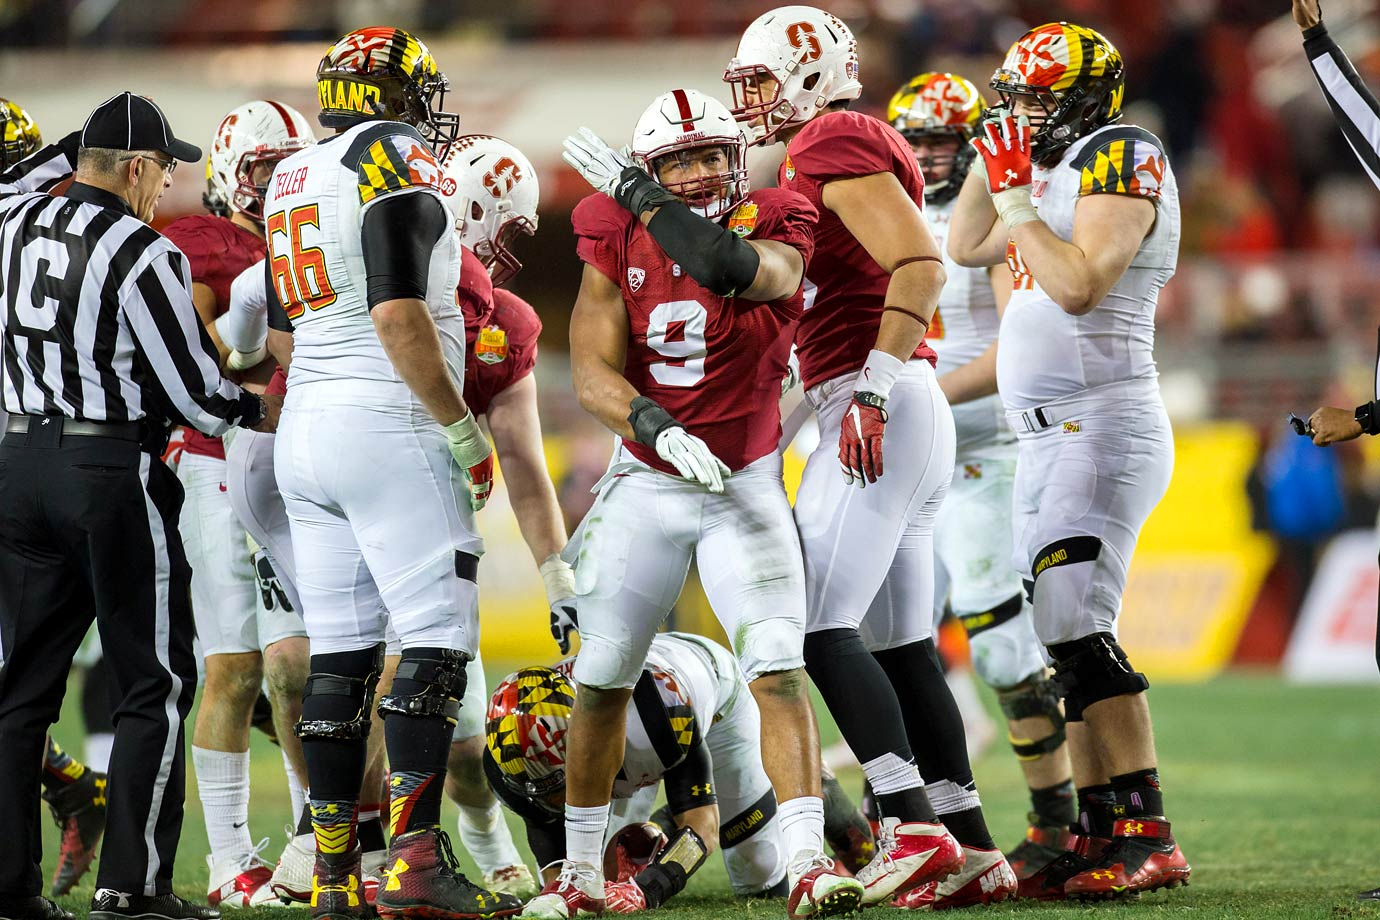 Vaughters picked up two sacks and added to a potent run defense that held Maryland to 0.6 yards per carry.